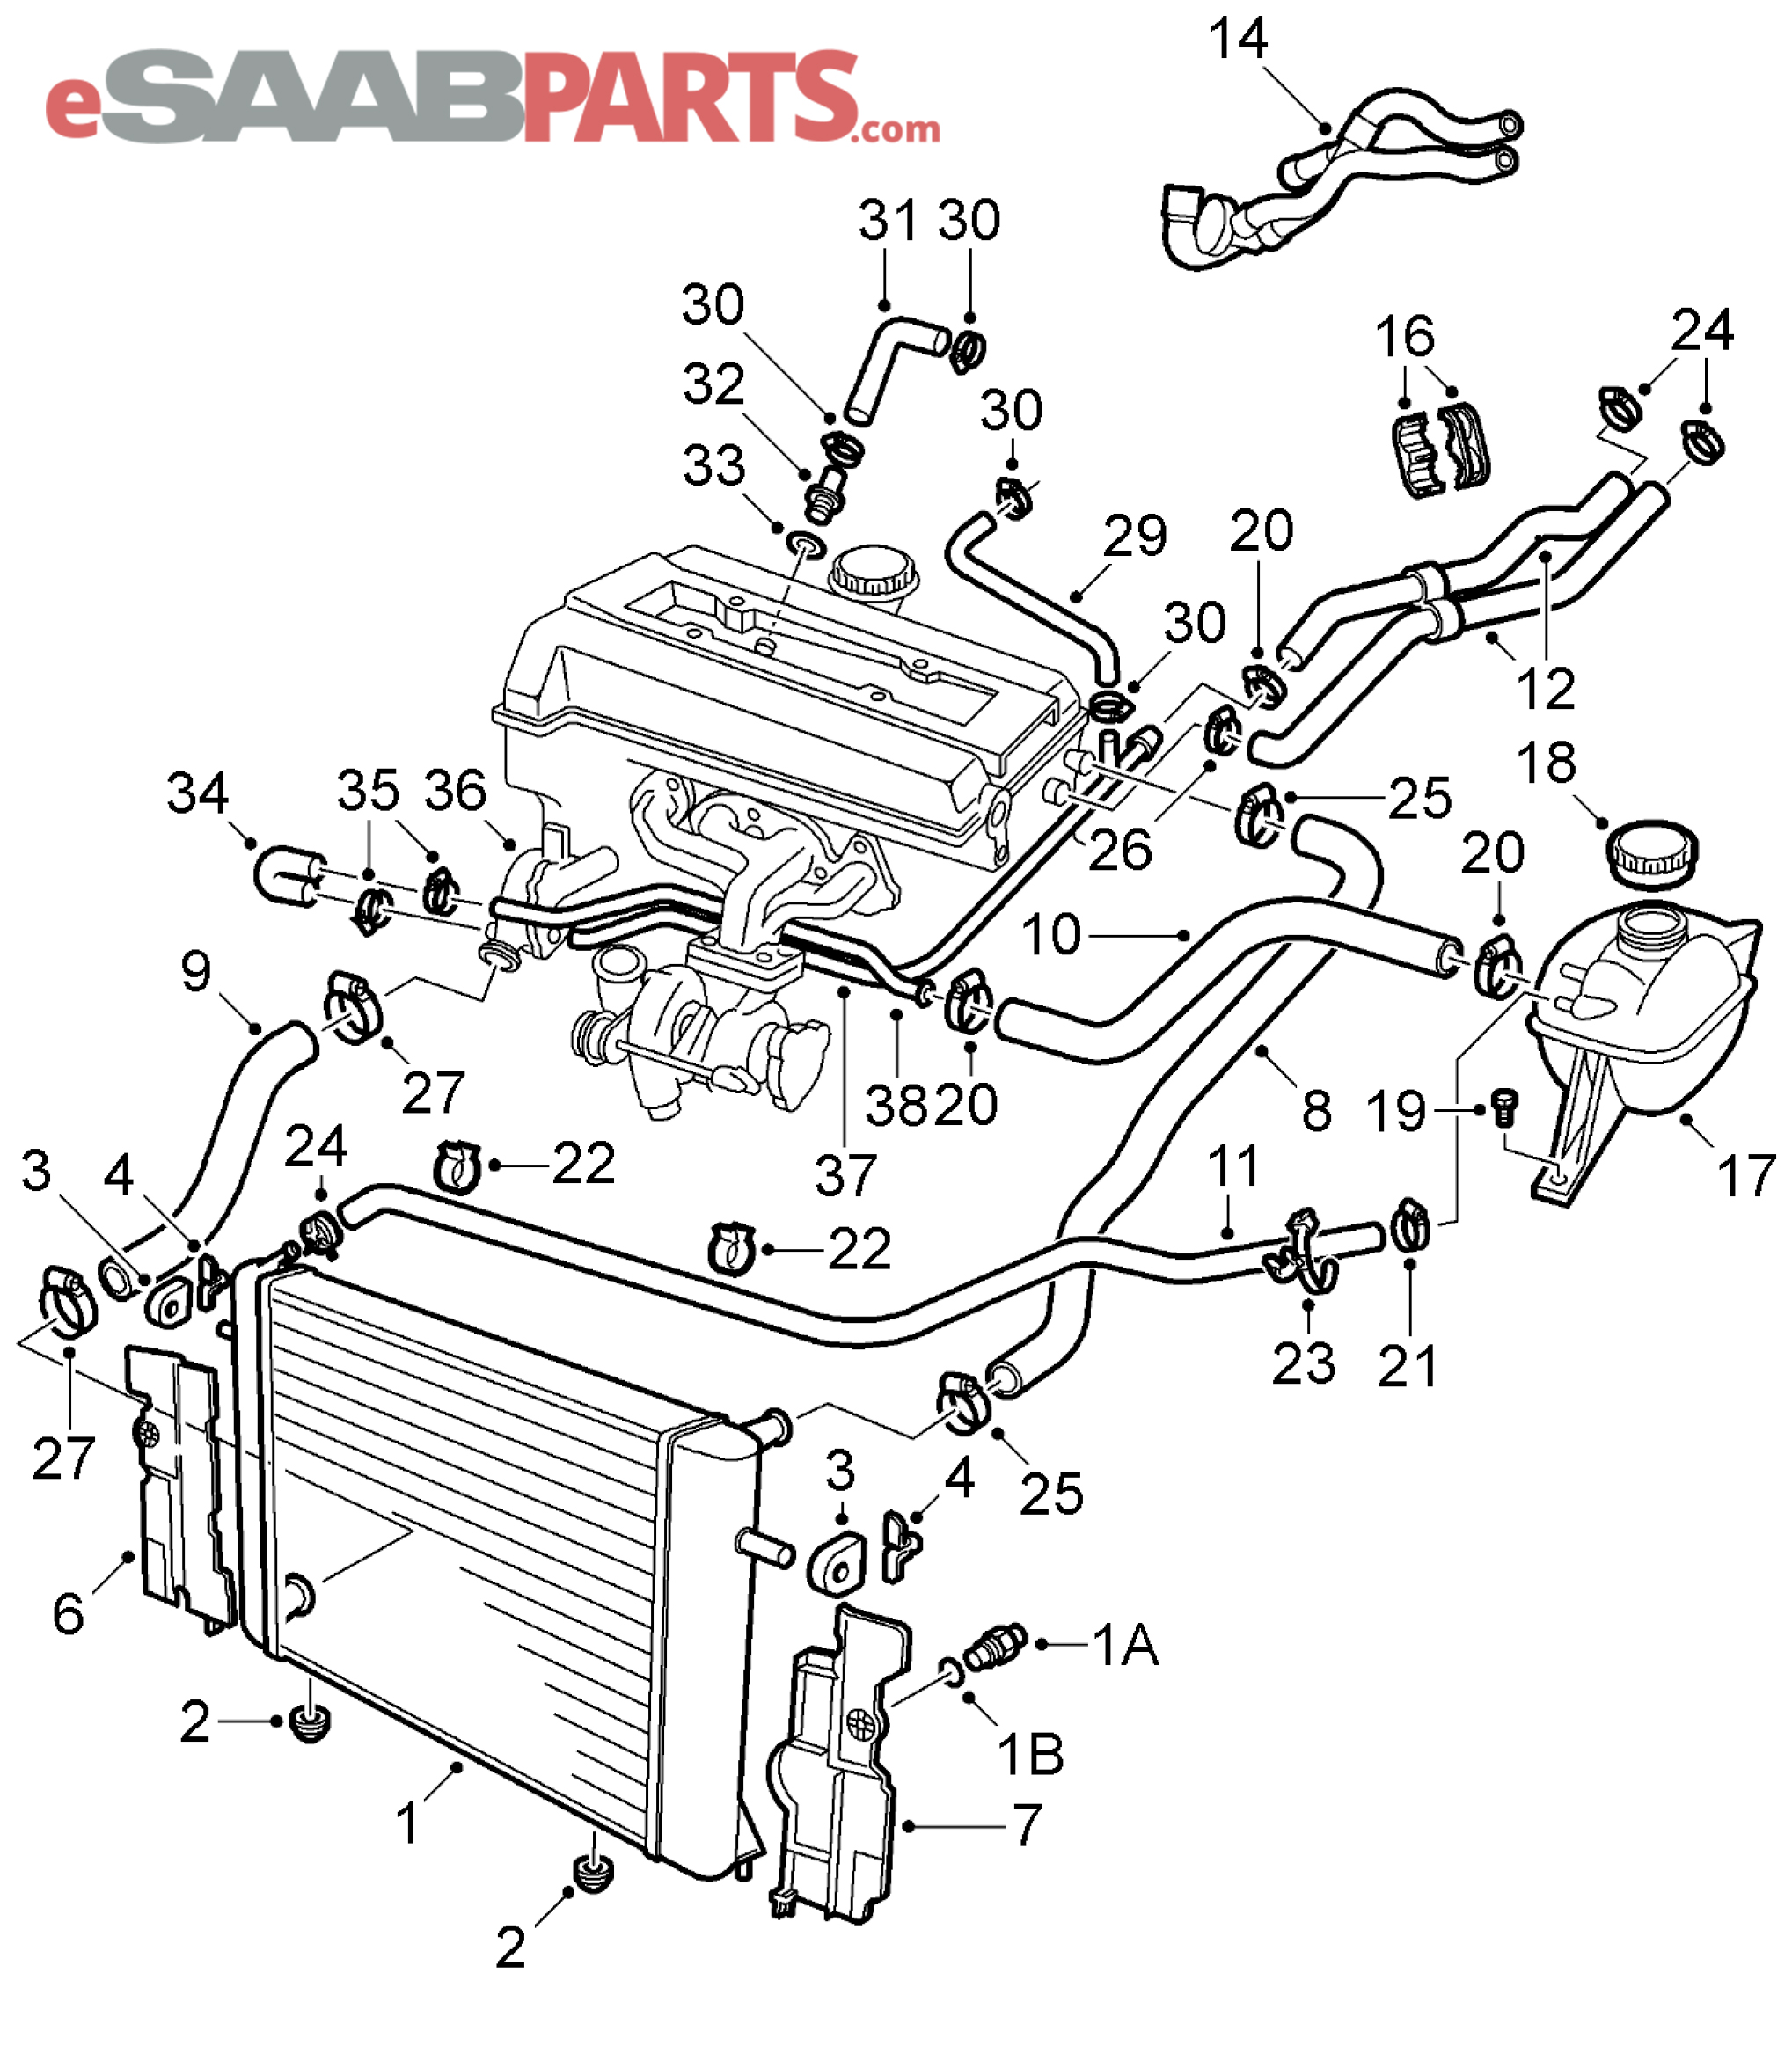 Nissan Altima Air Bag Sensor Location furthermore Sentra Radio Wiring Diagram moreover 1996 Toyota 4runner Fuse Box Location together with Saab 9000 Air Conditioning Wiring Diagram besides Discussion C759 ds450591. on 2010 pathfinder wiring diagram